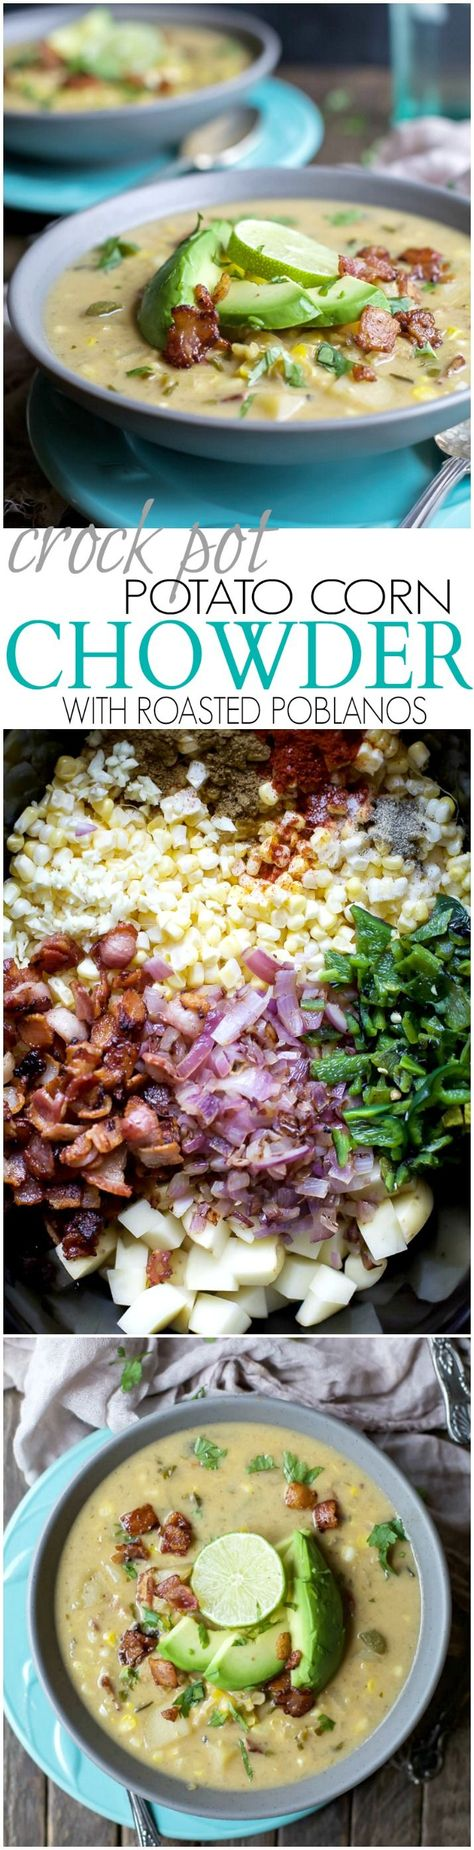 Soup is one of the stars of the fall but this Crock Pot Potato Corn Chowder with Roasted Poblanos is gonna take the cake! It's full of bold flavors, easy to make, gluten free, dairy free, and has BACON! | http://joyfulhealthyeats.com #paleo